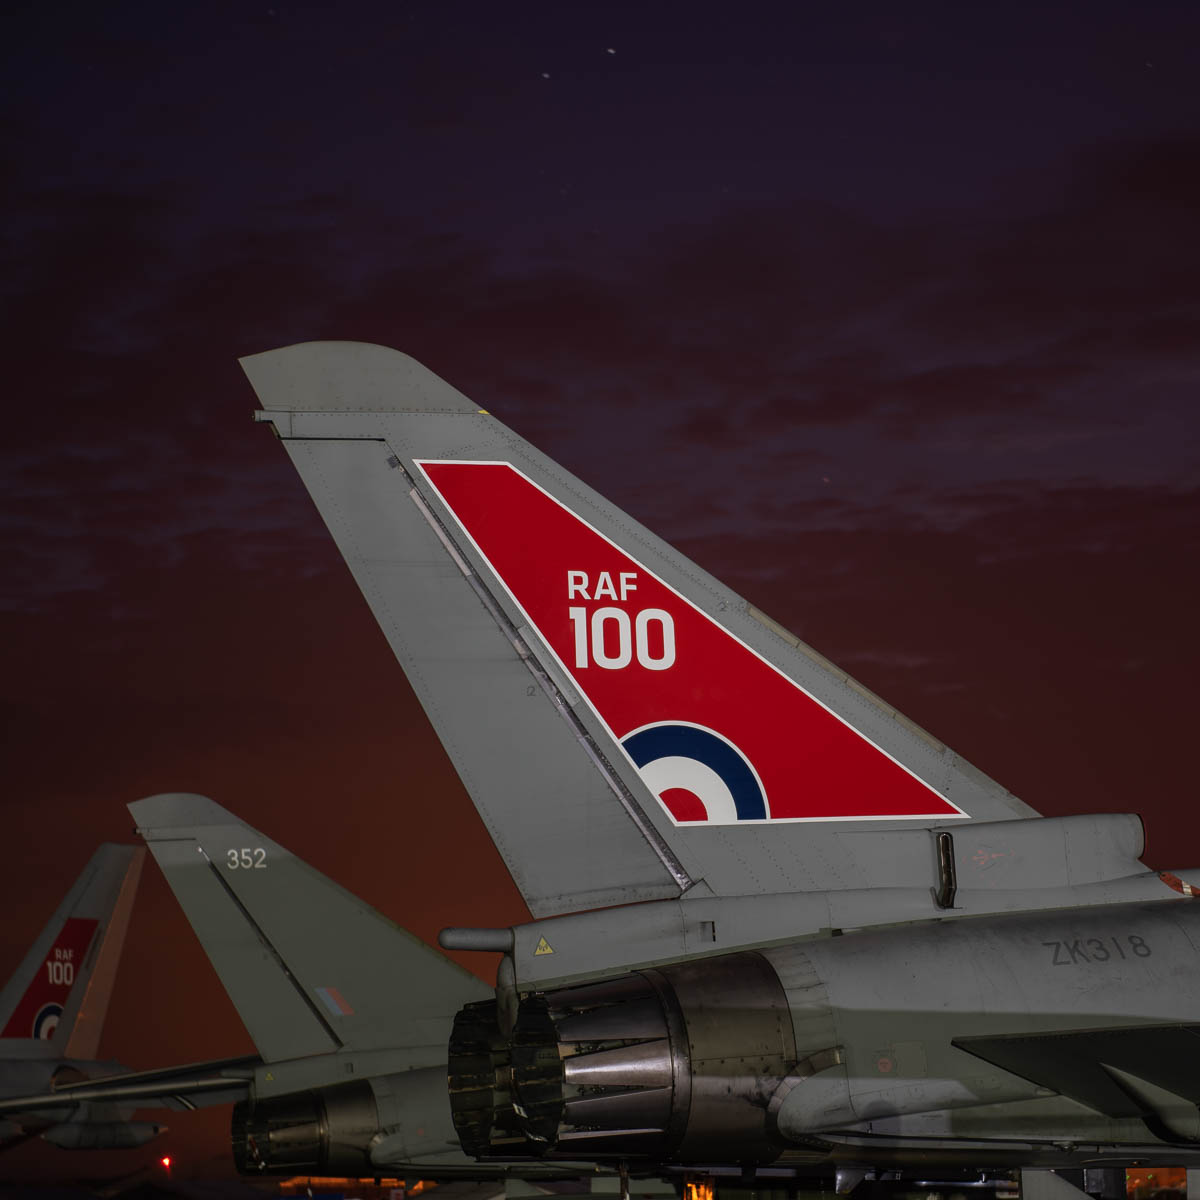 Special RAF 100 tail on the Typhoon display aircraft.